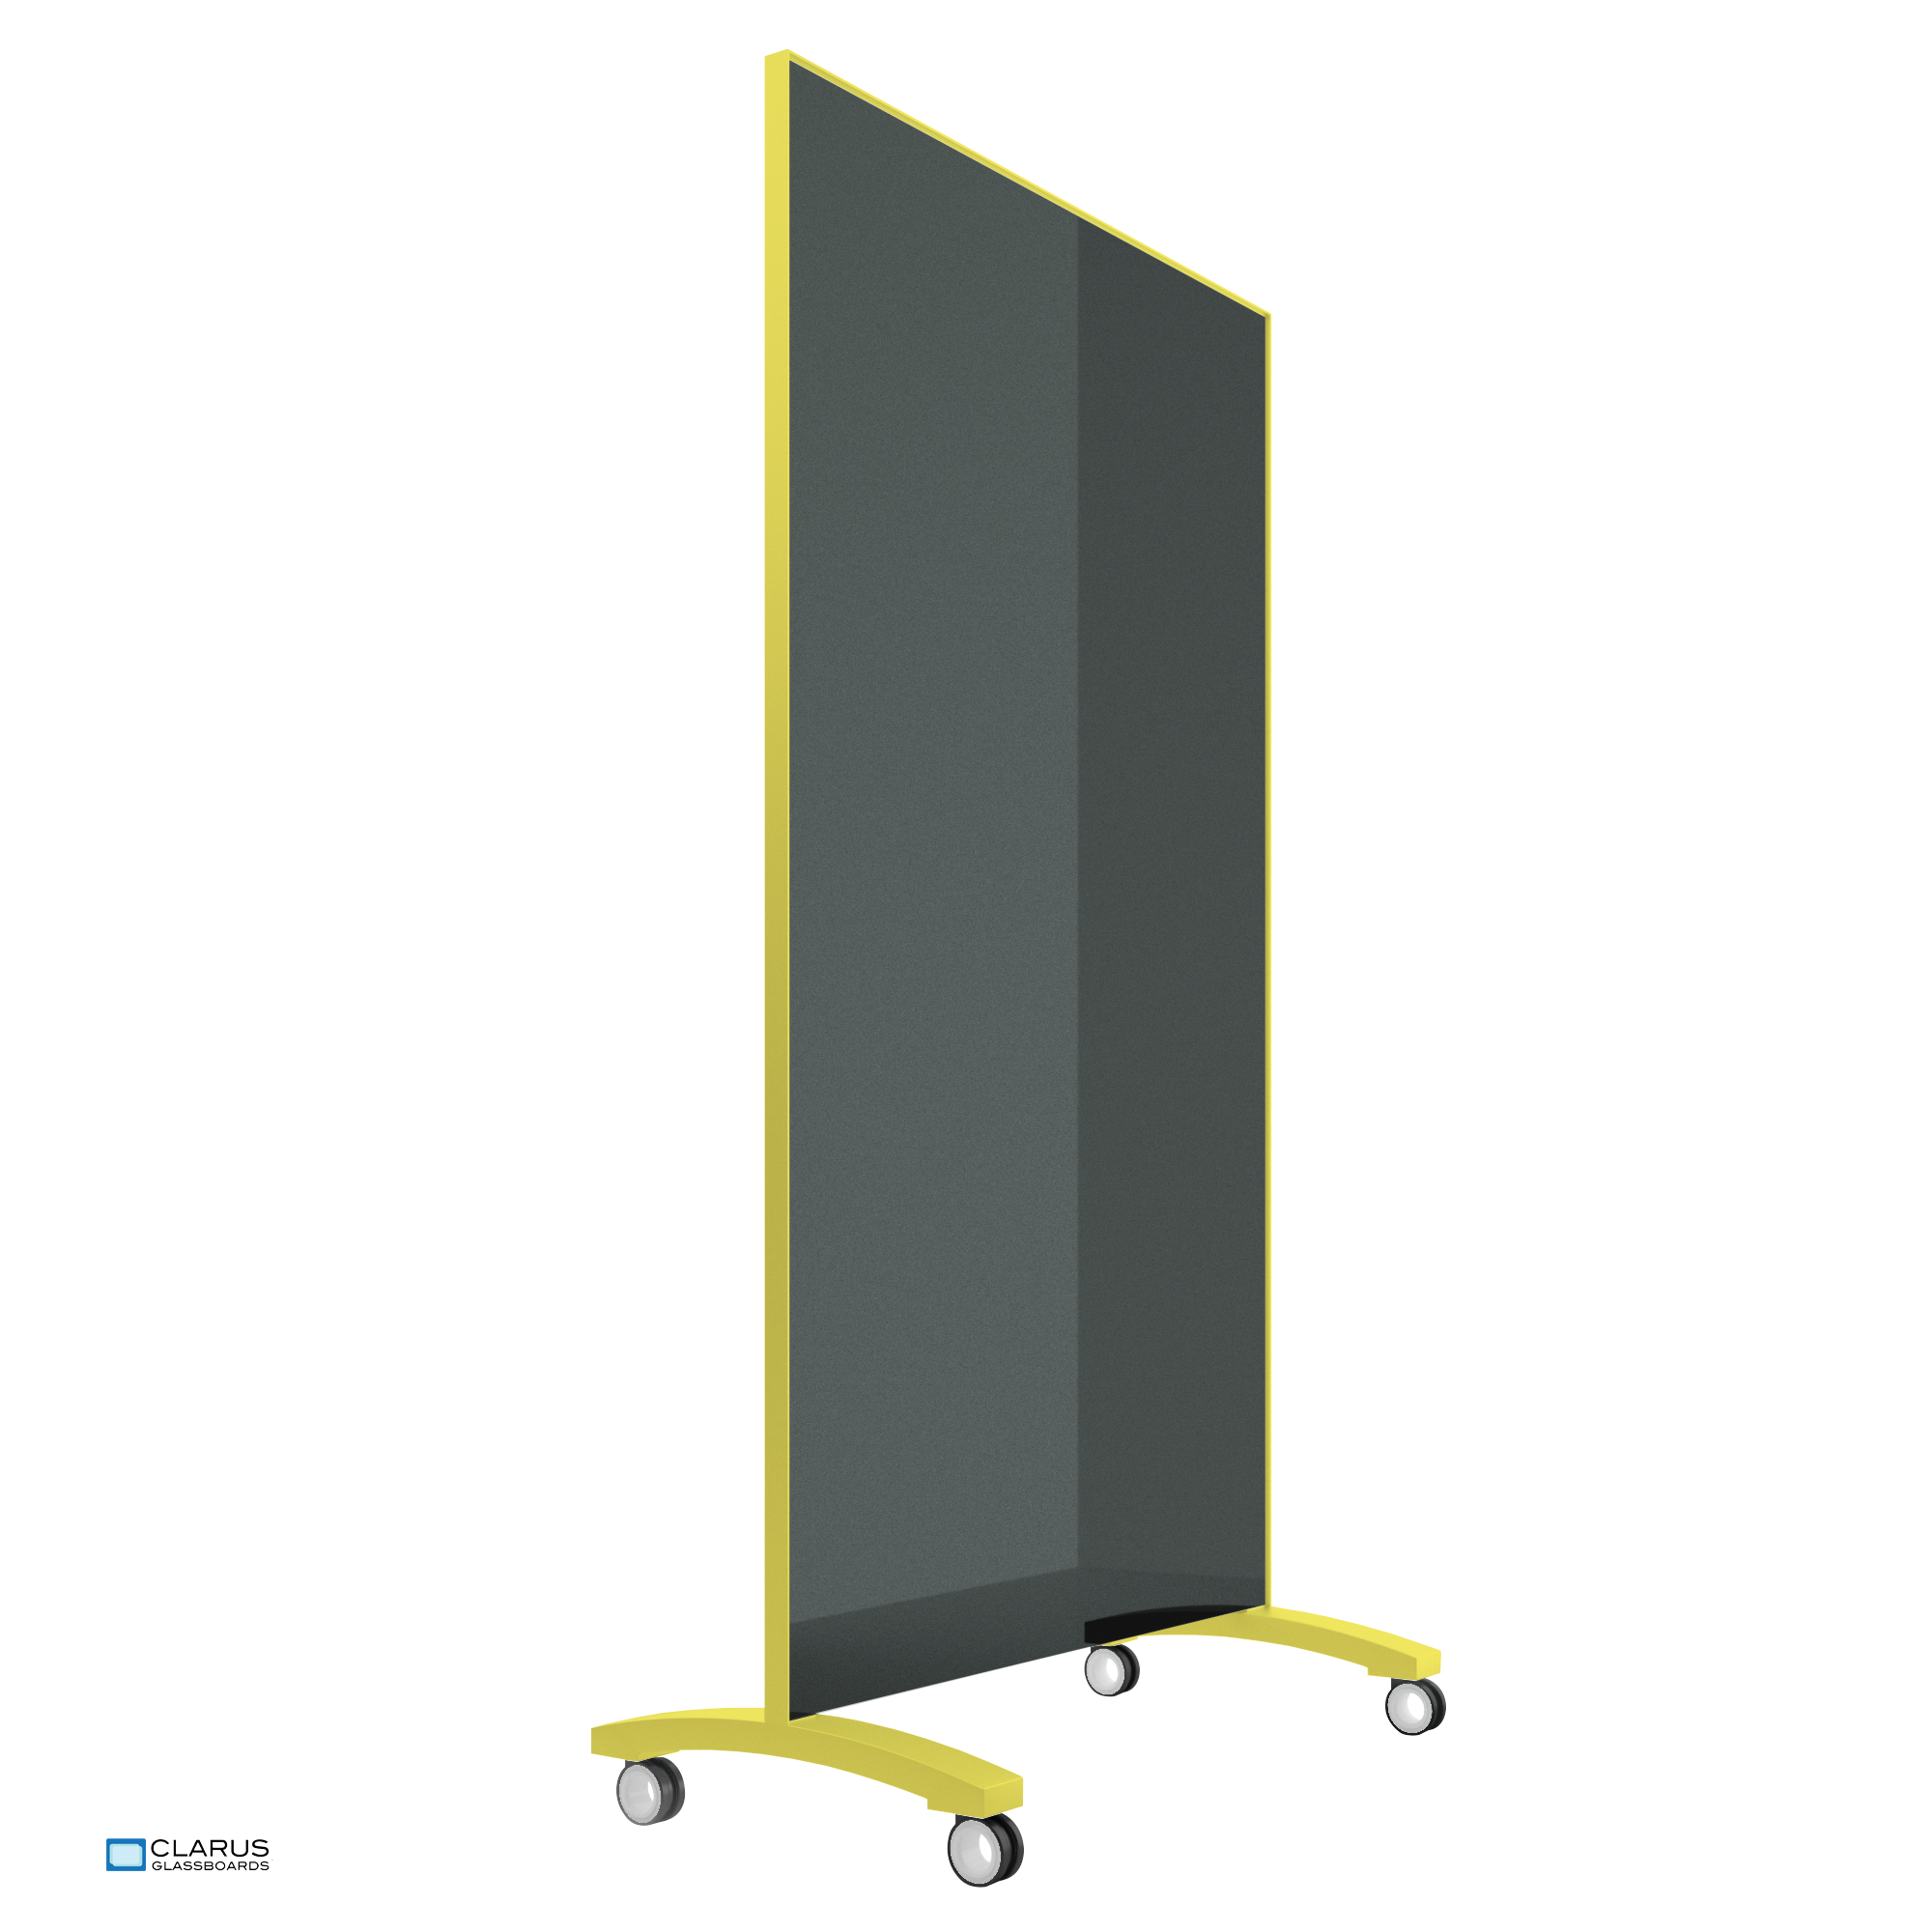 Transparent boards mobile glass. Check out my go